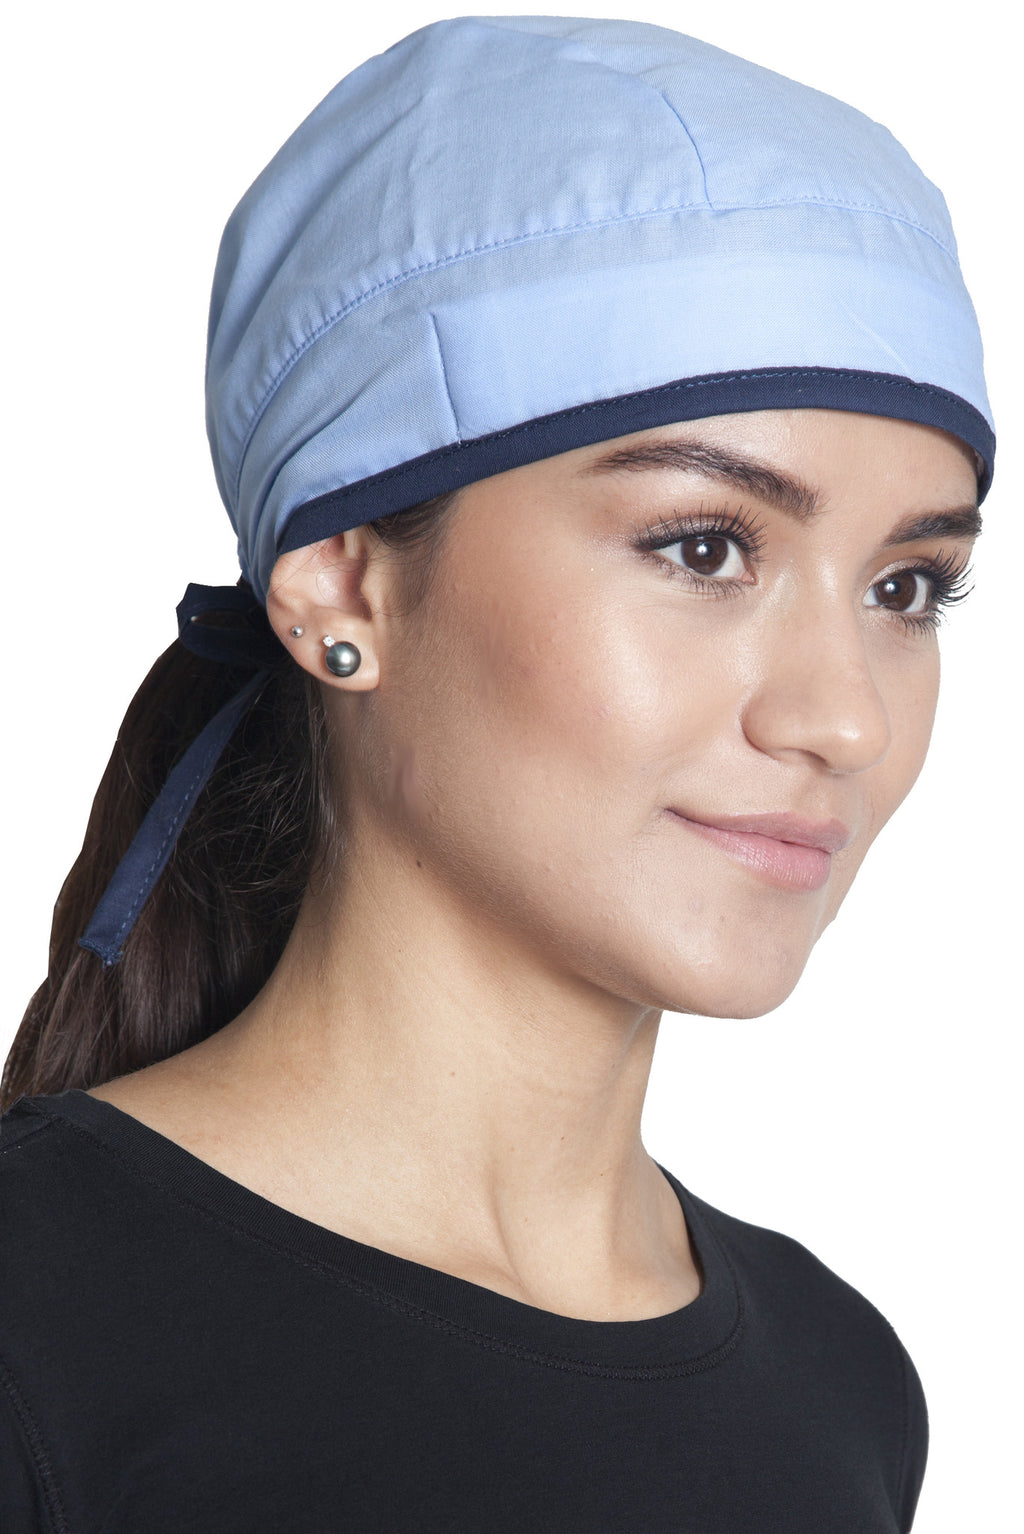 Fiumara Apparel Fitted Surgical Cap Sky Blue with Navy Ties Main